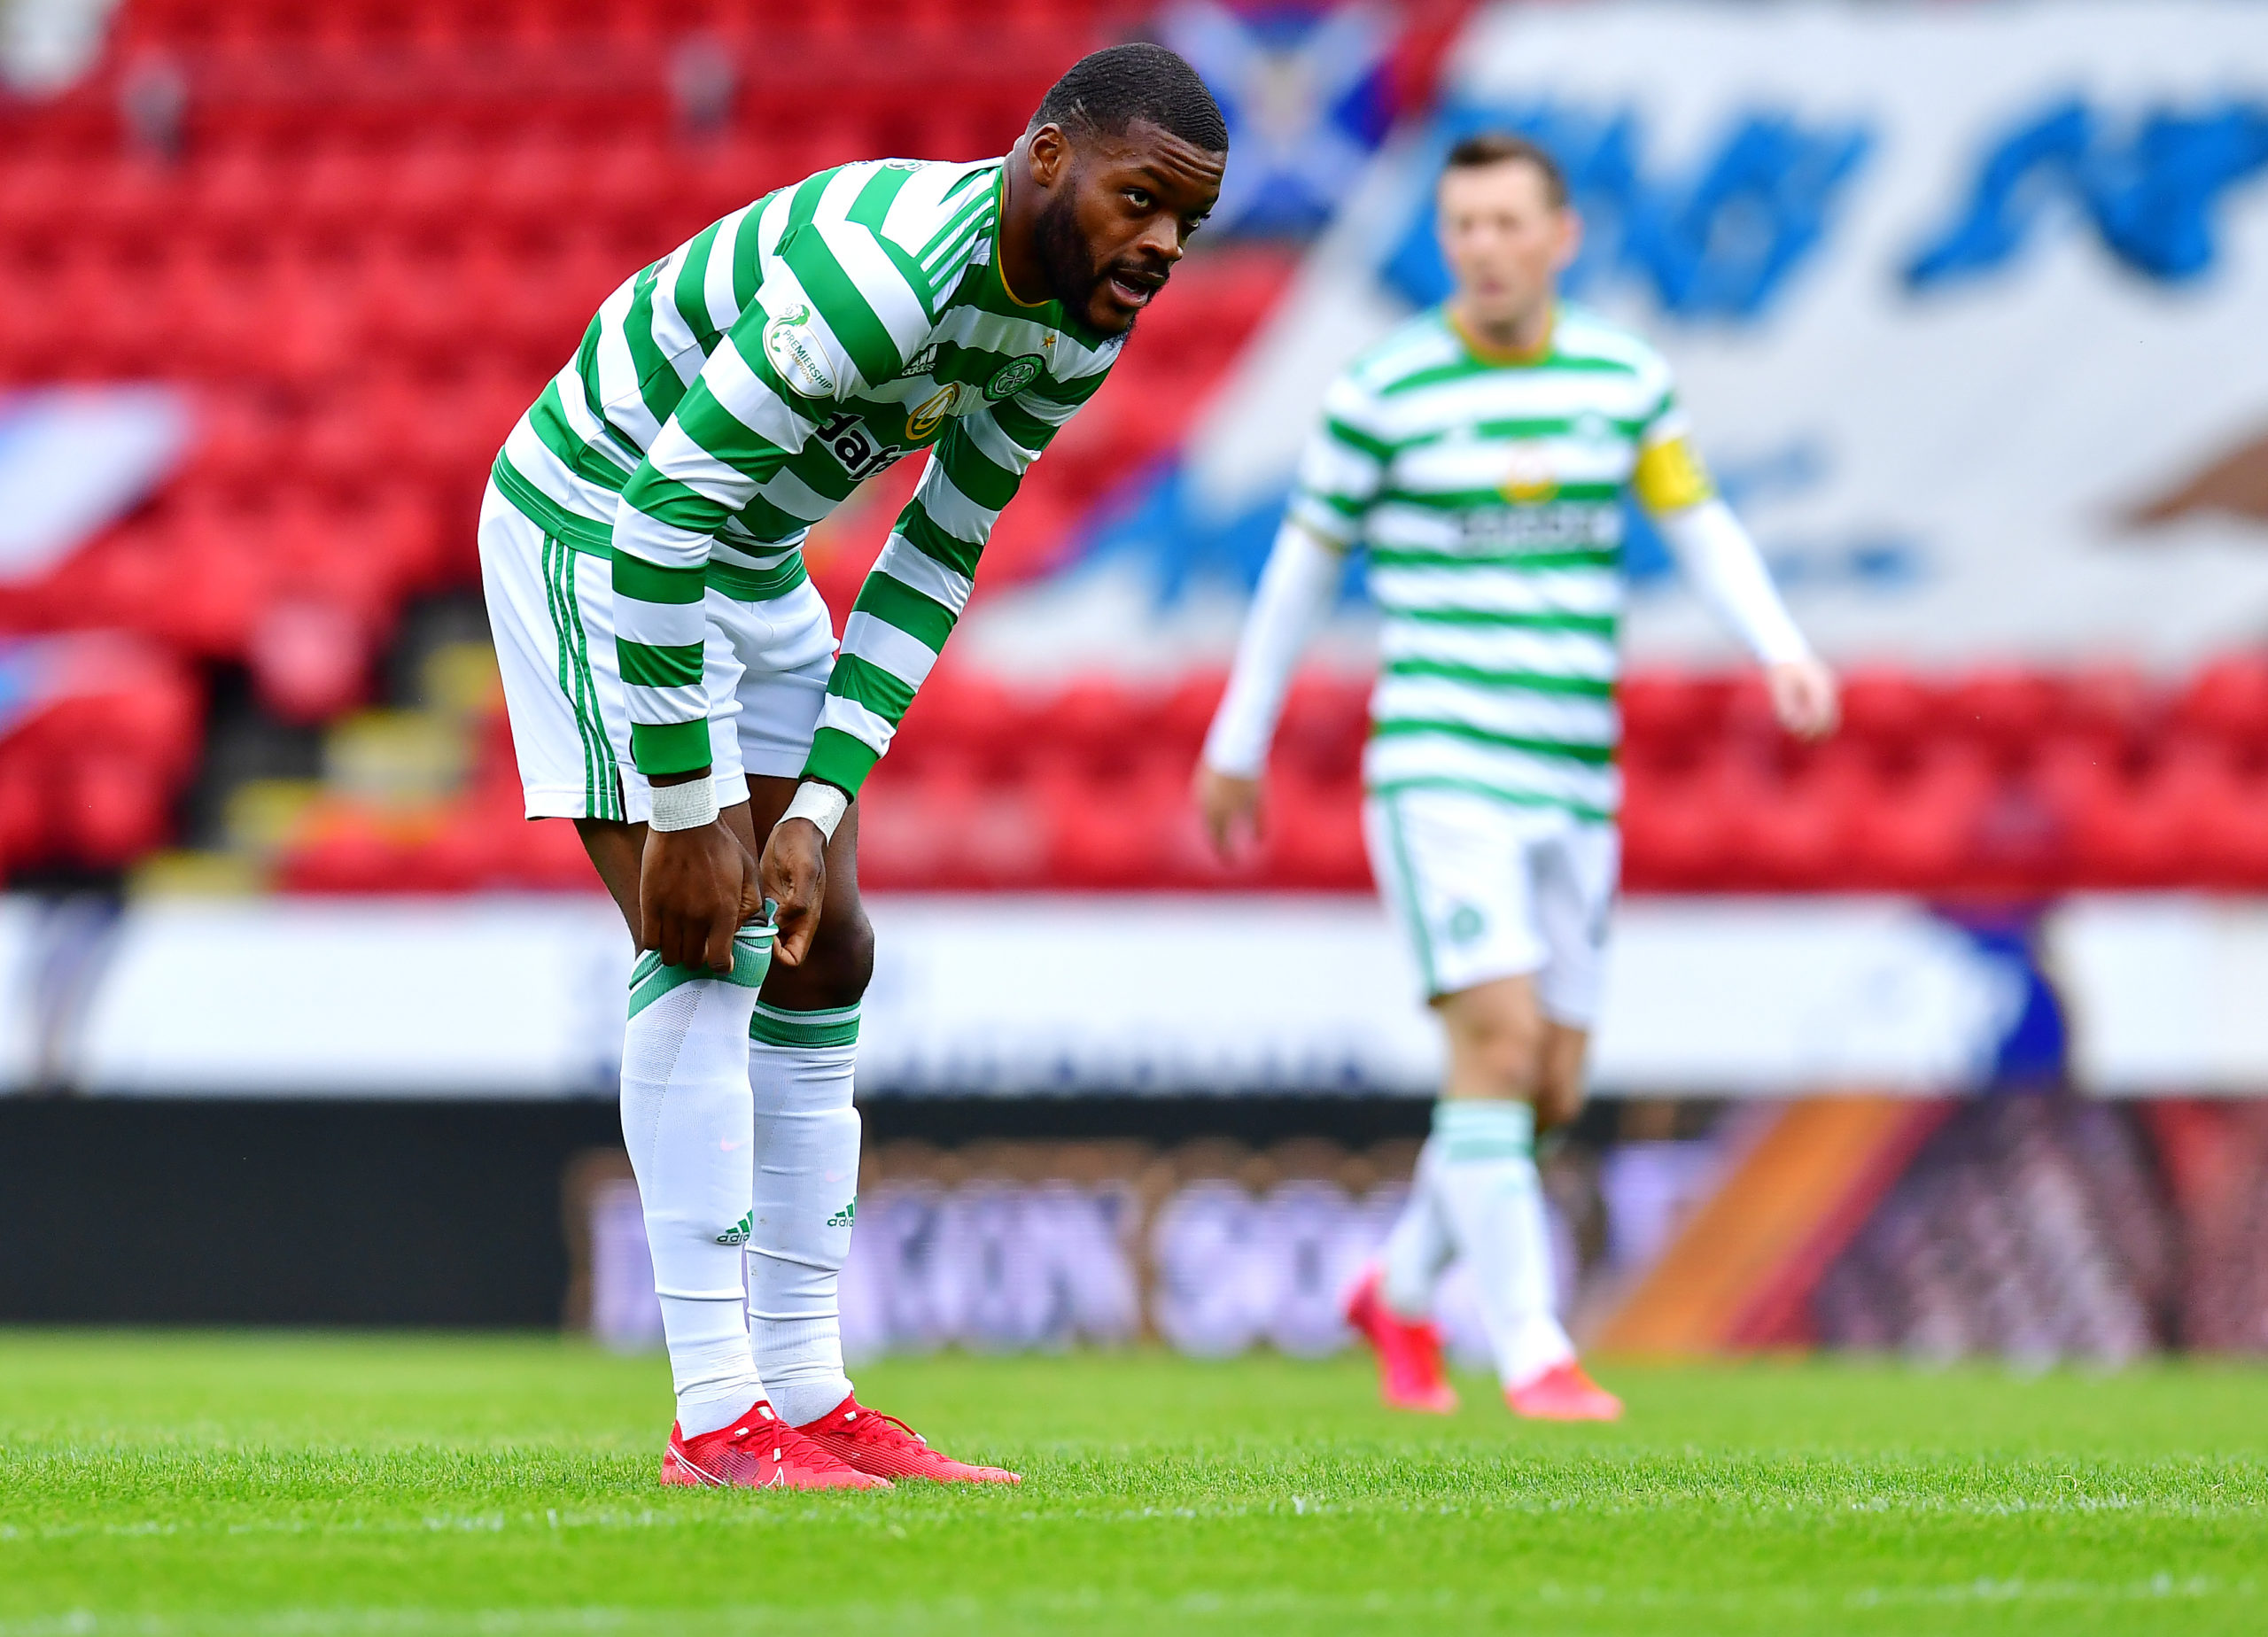 Ntcham's performances have been inconsistent as of late